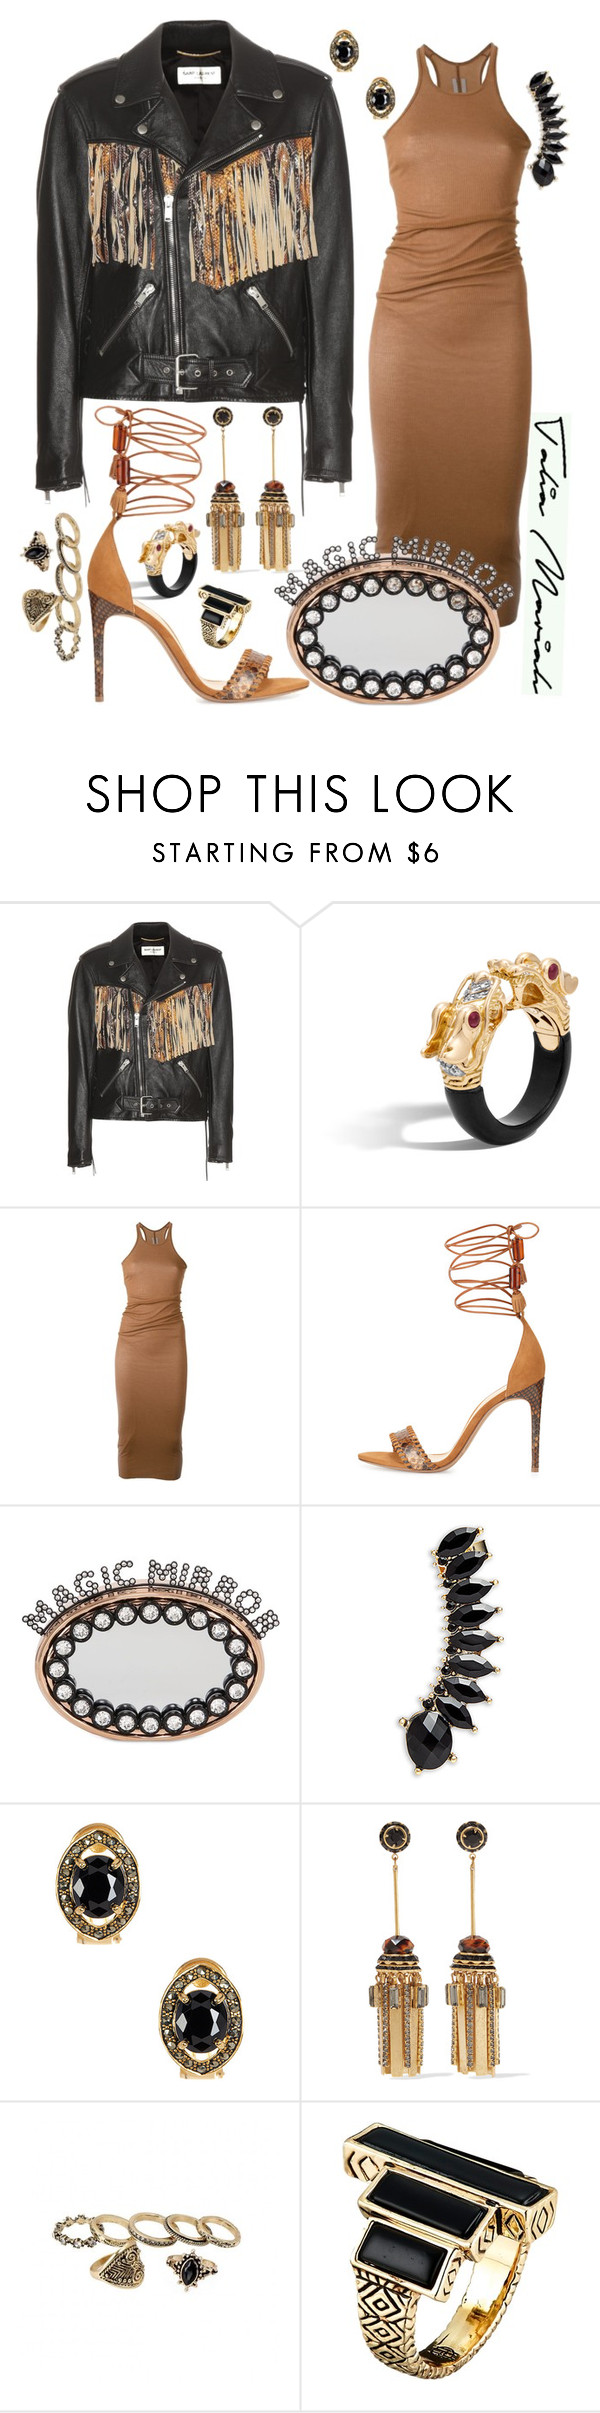 """""""Magic Mirror"""" by taliamariah-cirillo ❤ liked on Polyvore featuring Yves Saint Laurent, Rick Owens, Alexandre Birman, Benedetta Bruzziches, Jules Smith, Savvy Cie, Elizabeth Cole, House of Harlow 1960, chic and fashionista"""